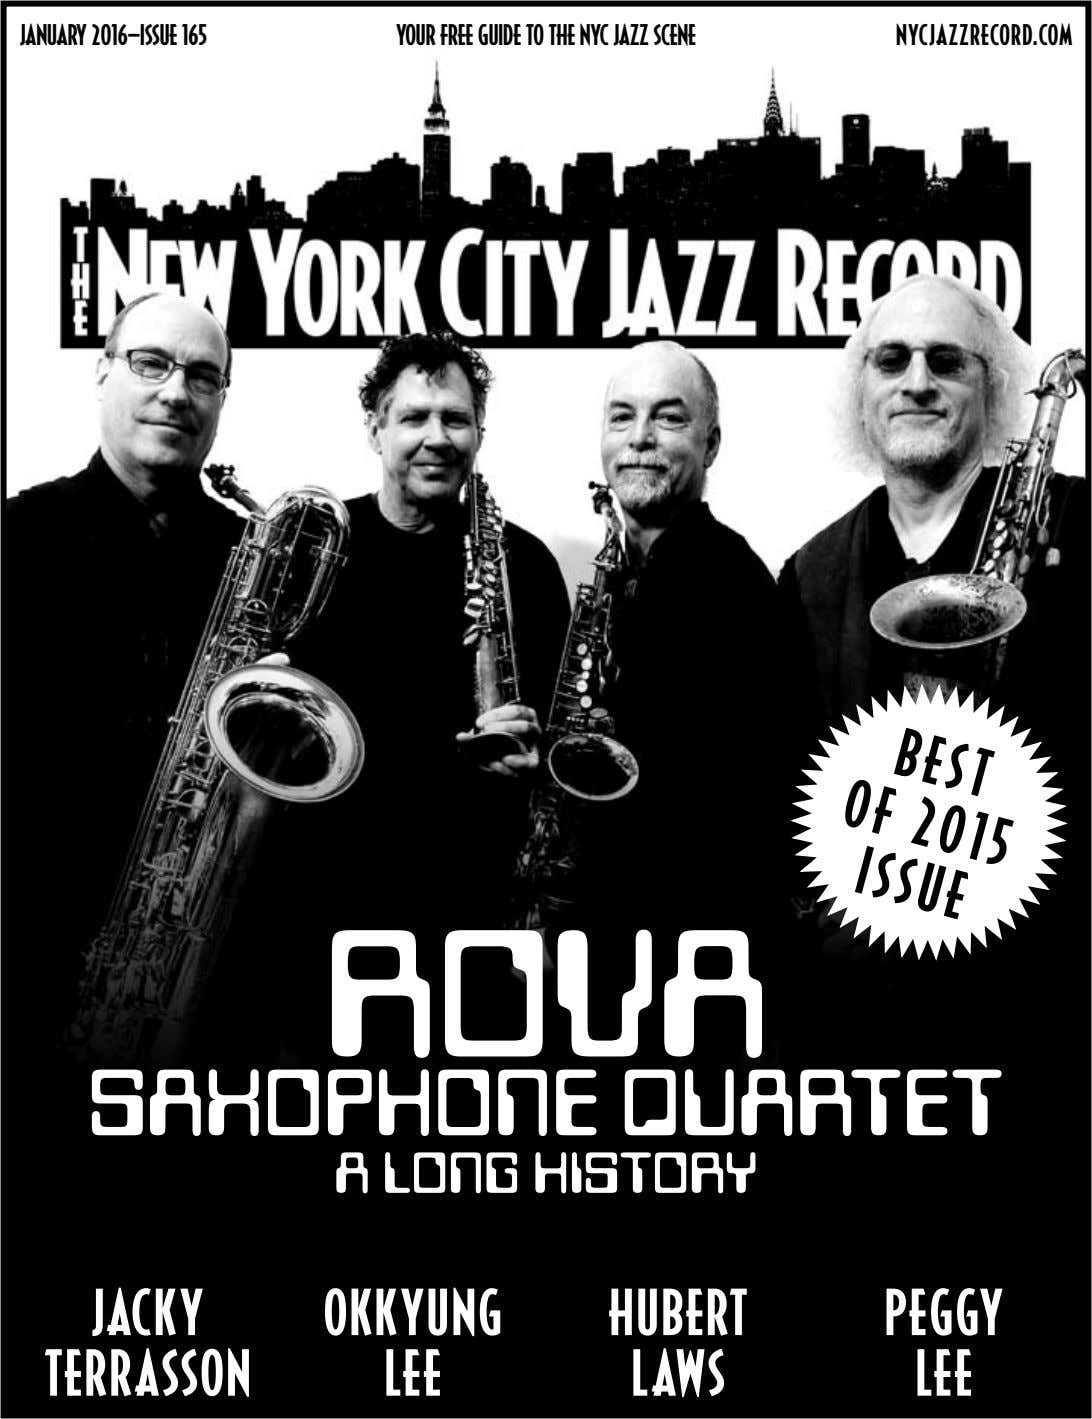 JANUARY 2016—iSSUE 165 YOUR fREE GUiDE TO THE NYC JAZZ SCENE NYCJAZZRECORD.COM ROVA SAXOPHONE QUARTET